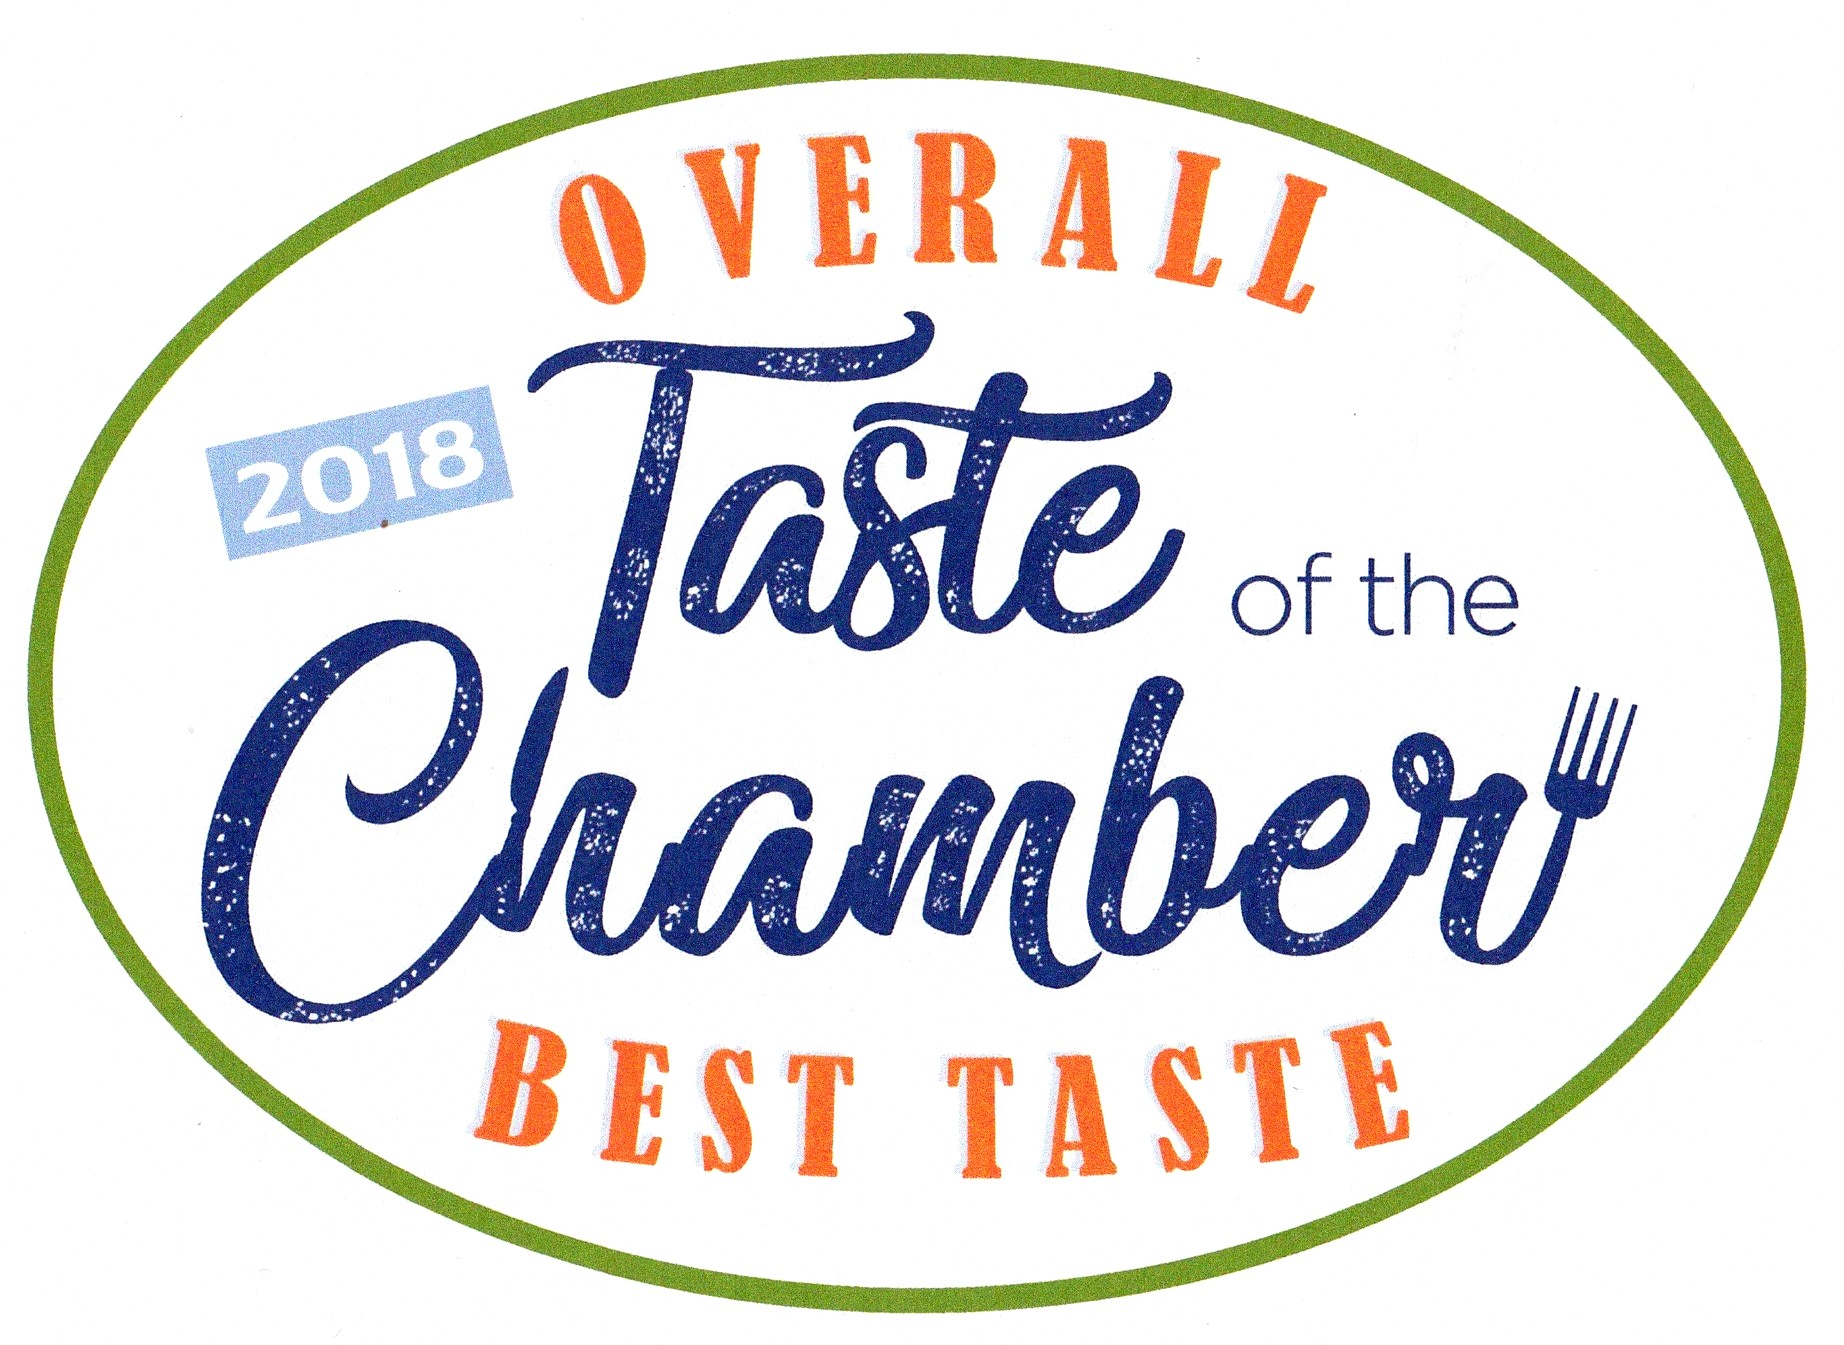 overall 2018 taste of the chamber best taste